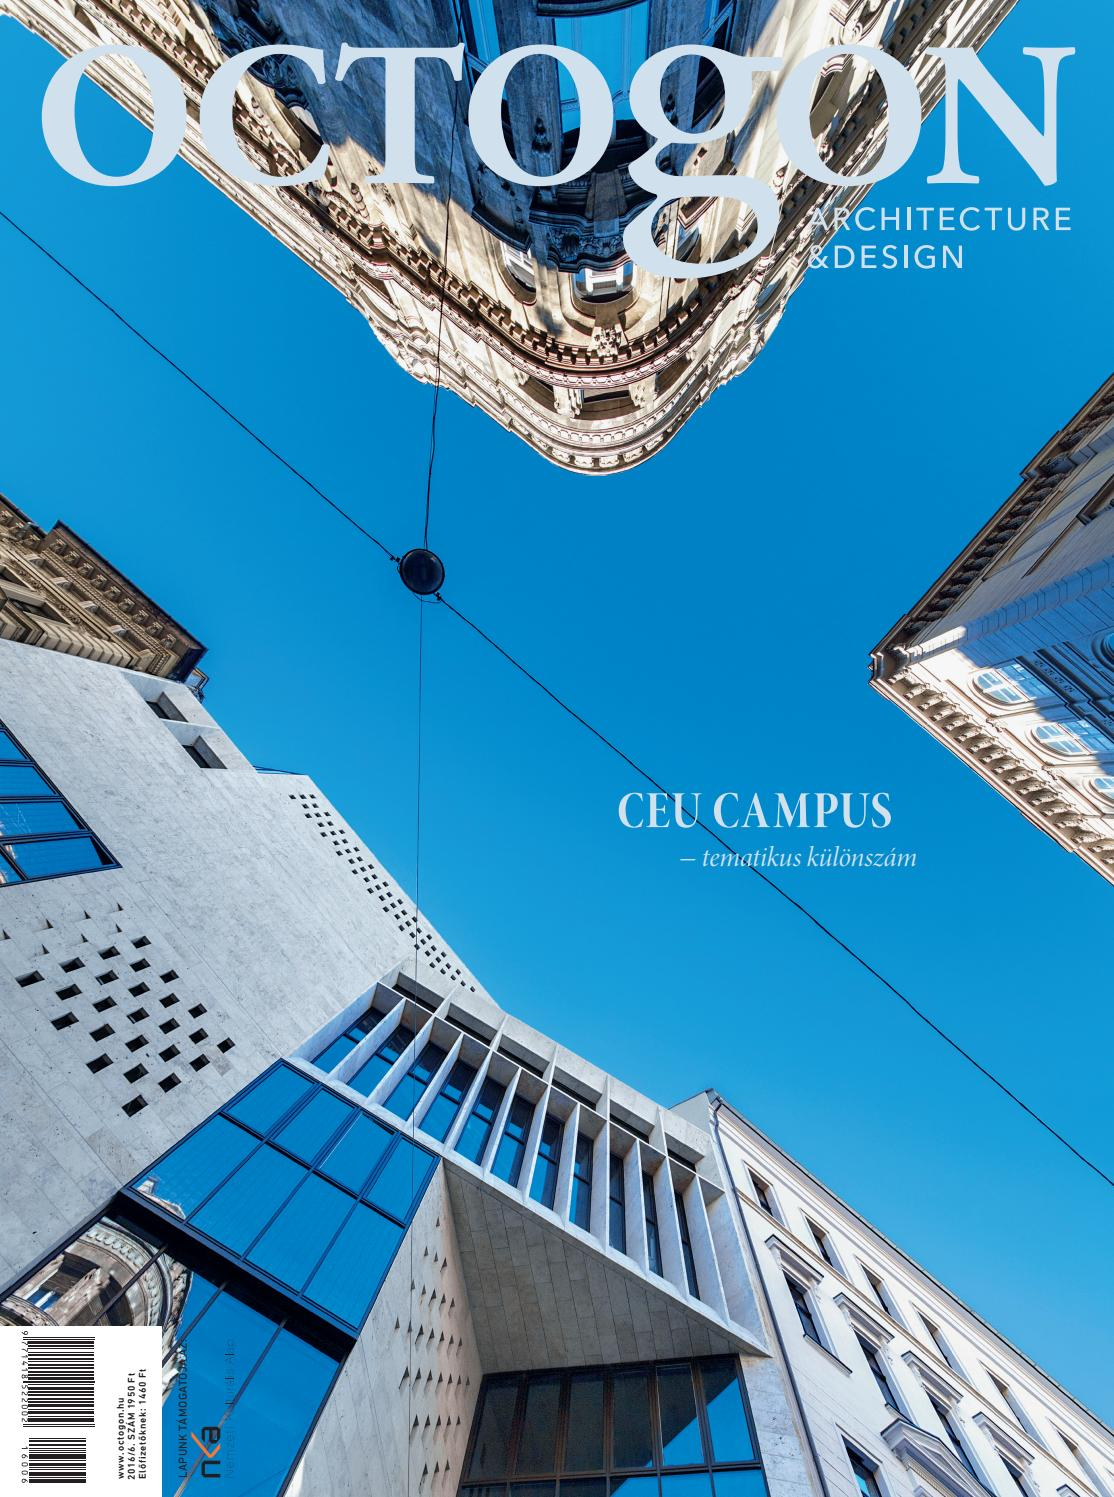 Octogon magazine 2016 6 ceu campus special edition by octogon architecture design magazine issuu